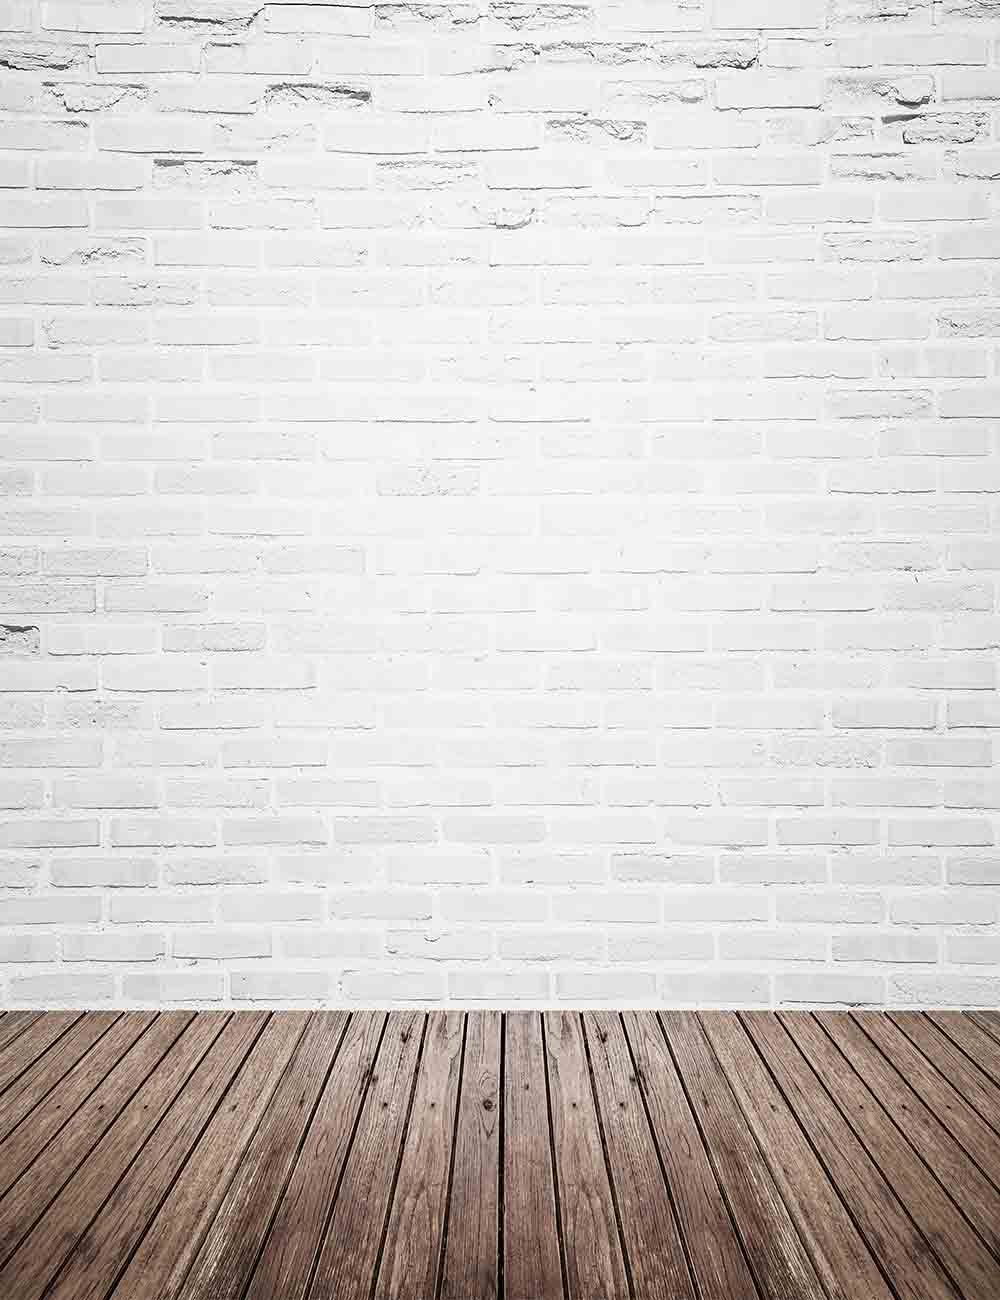 Retro White Brick Wall With Wood Floor Mat Texture